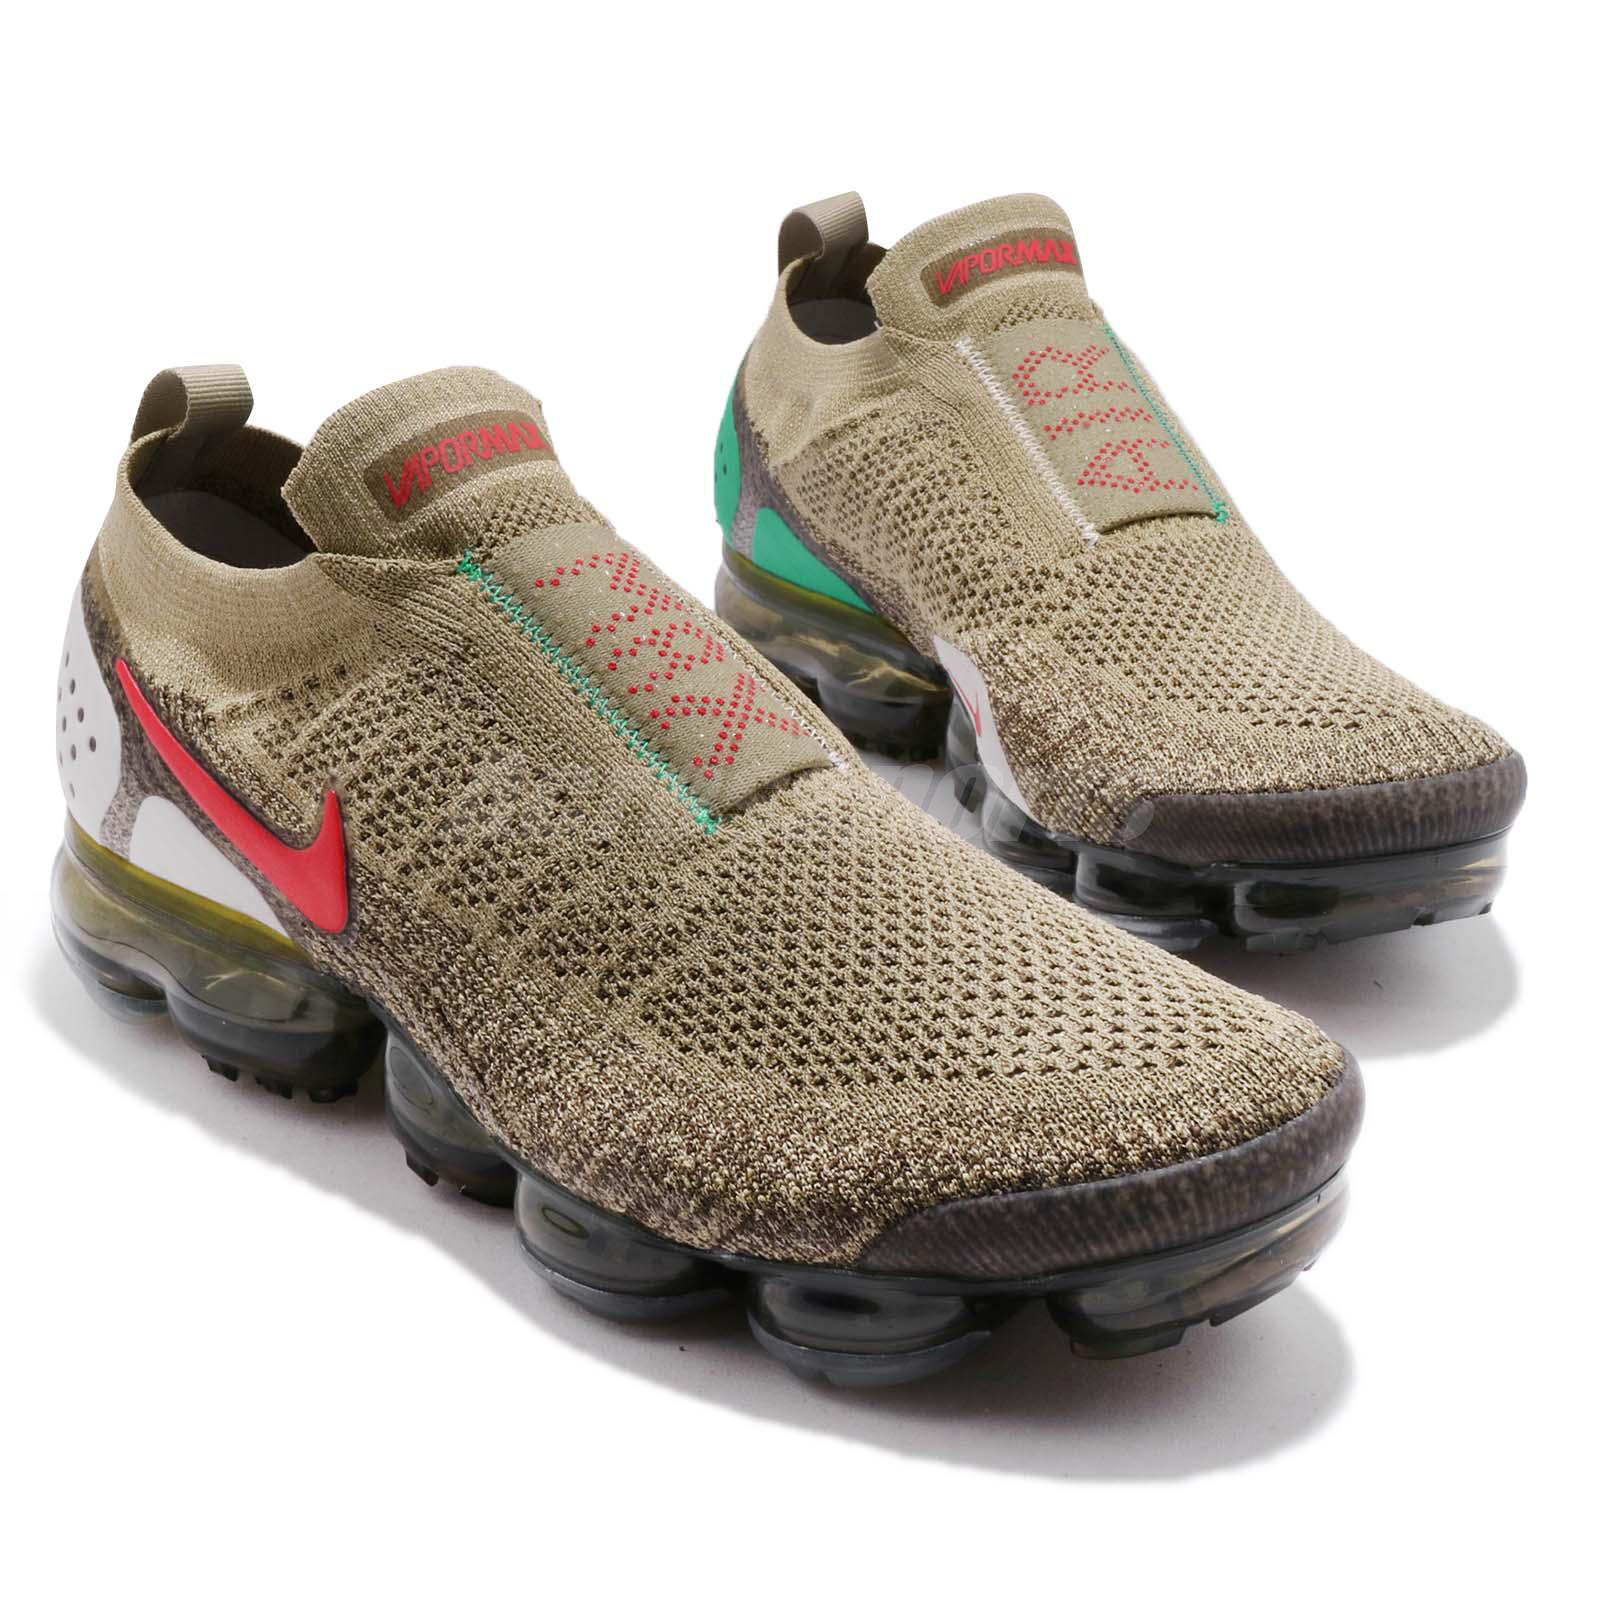 2b7bc62812d Nike Air Vapormax FK Moc 2 II Flyknit Neutral Olive Red Men Running ...